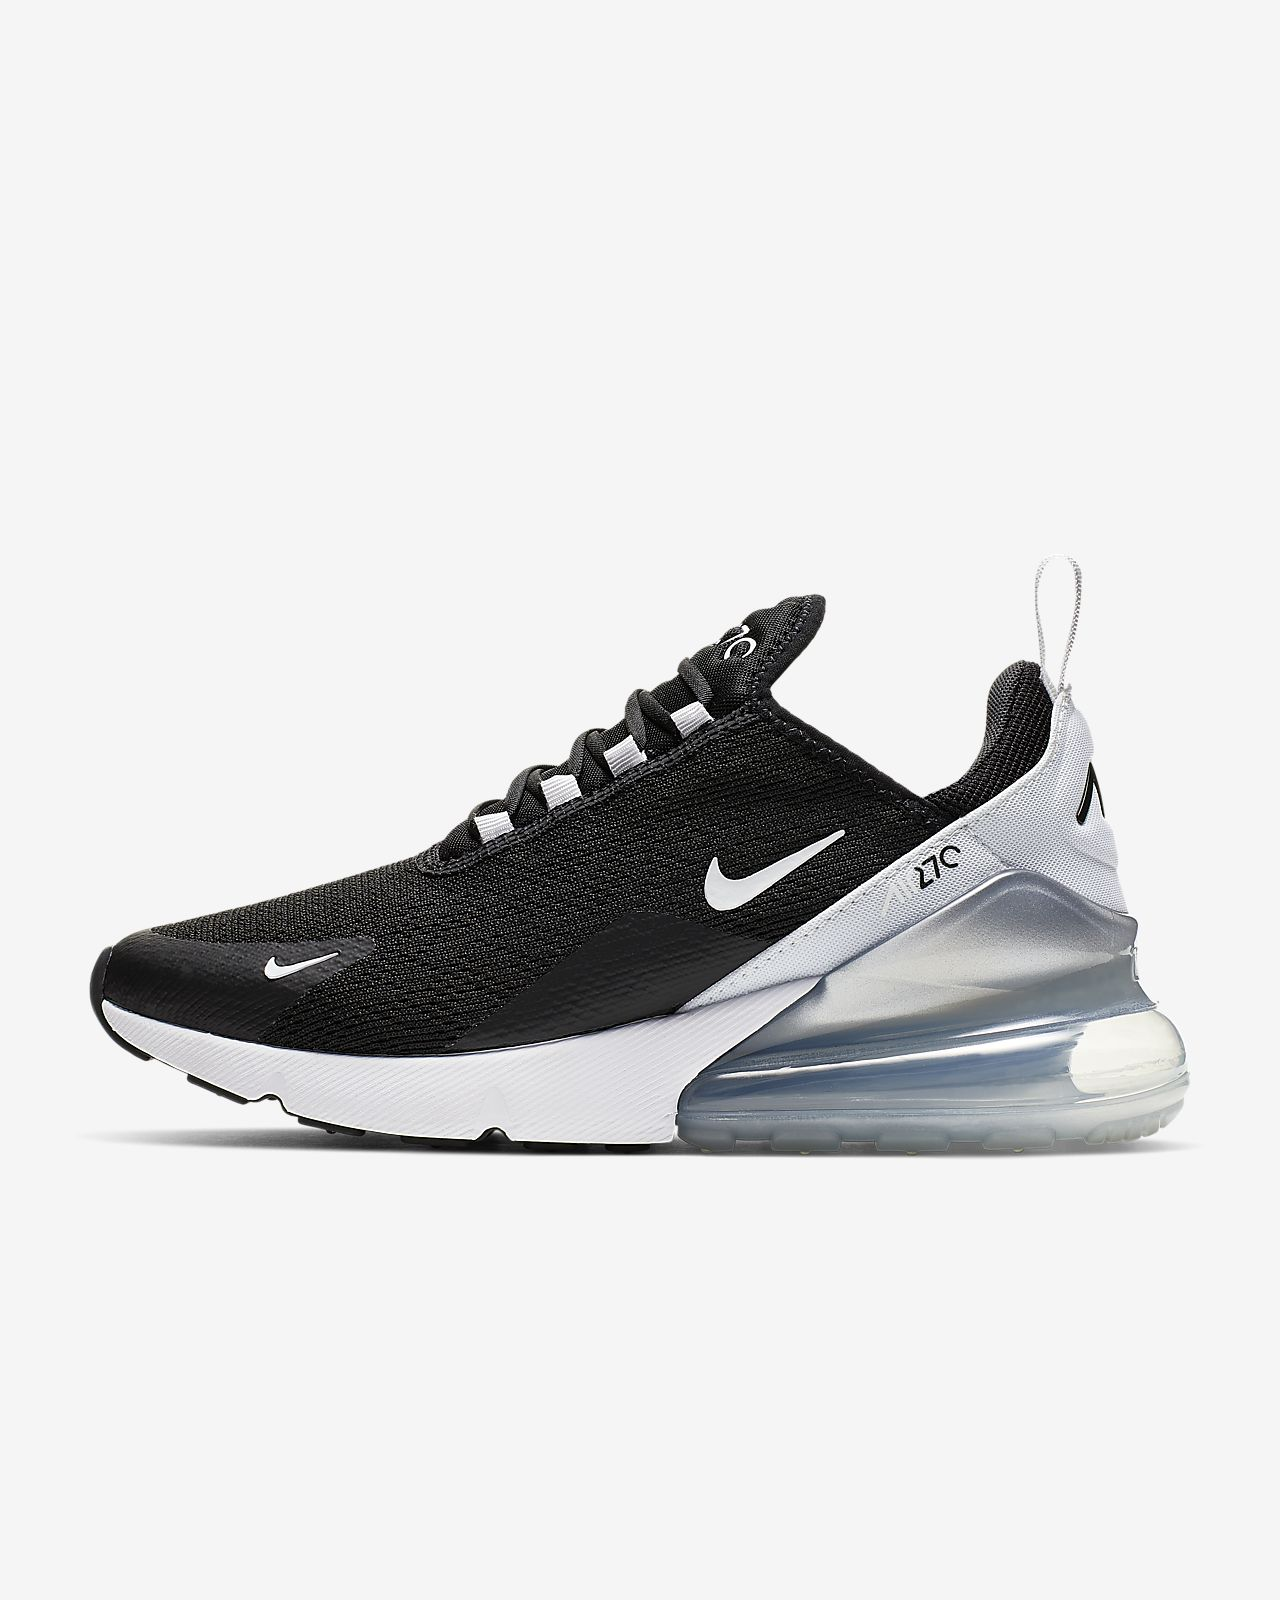 innovative design c8603 5c44f ... Chaussure Nike Air Max 270 pour Femme